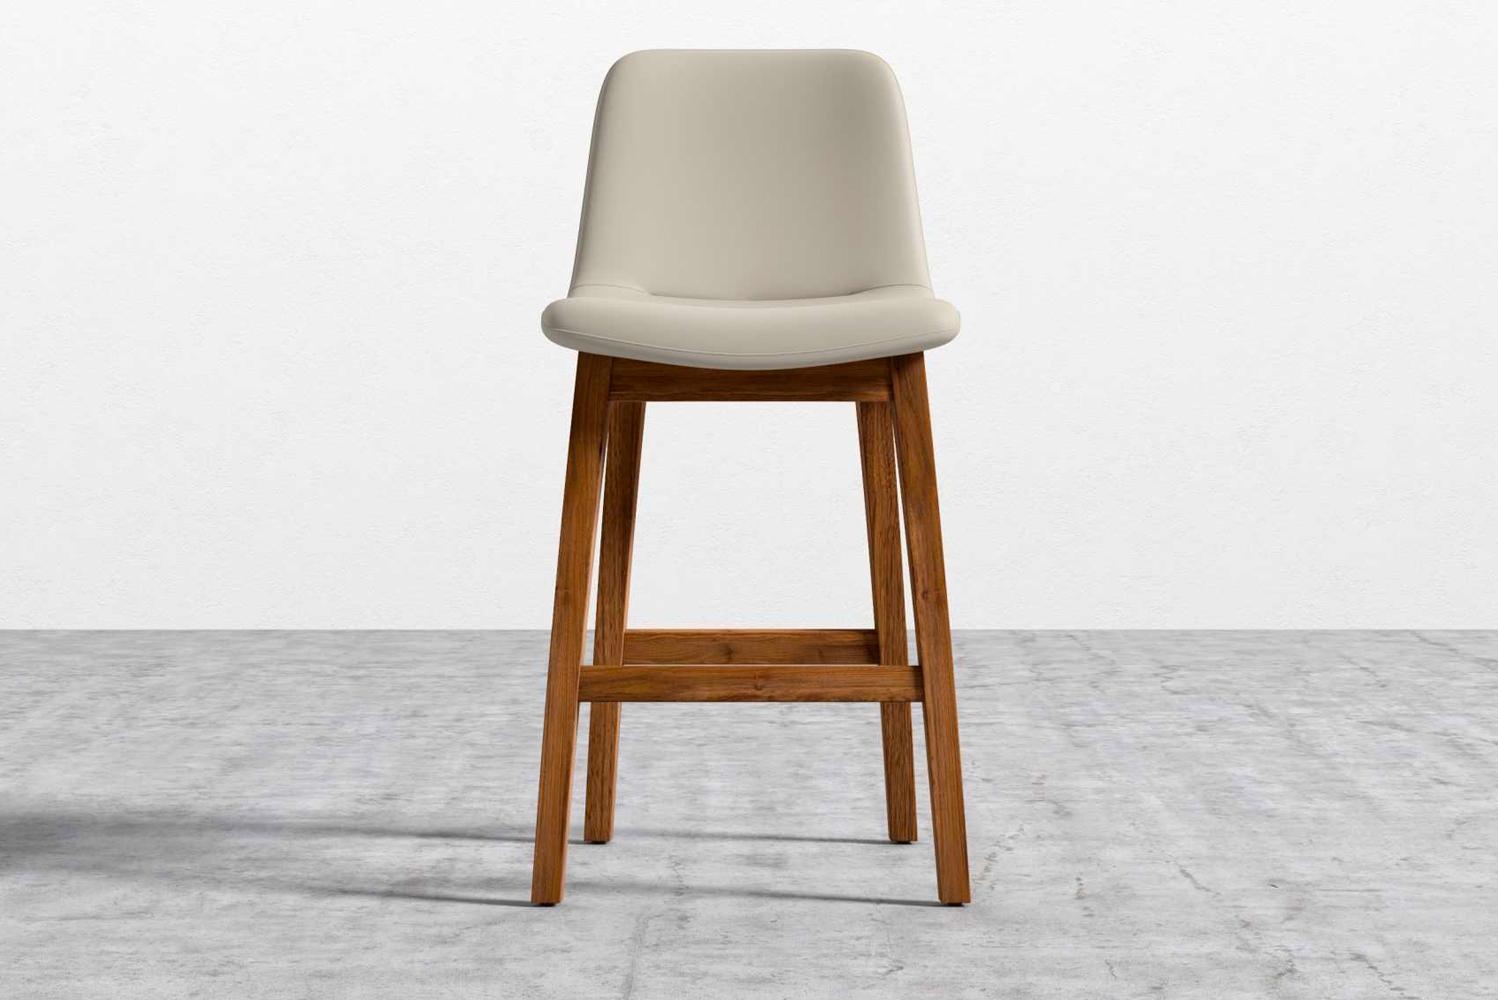 Introducing the Aubrey counter stool, inspired by the Aubrey armchair and side chair.